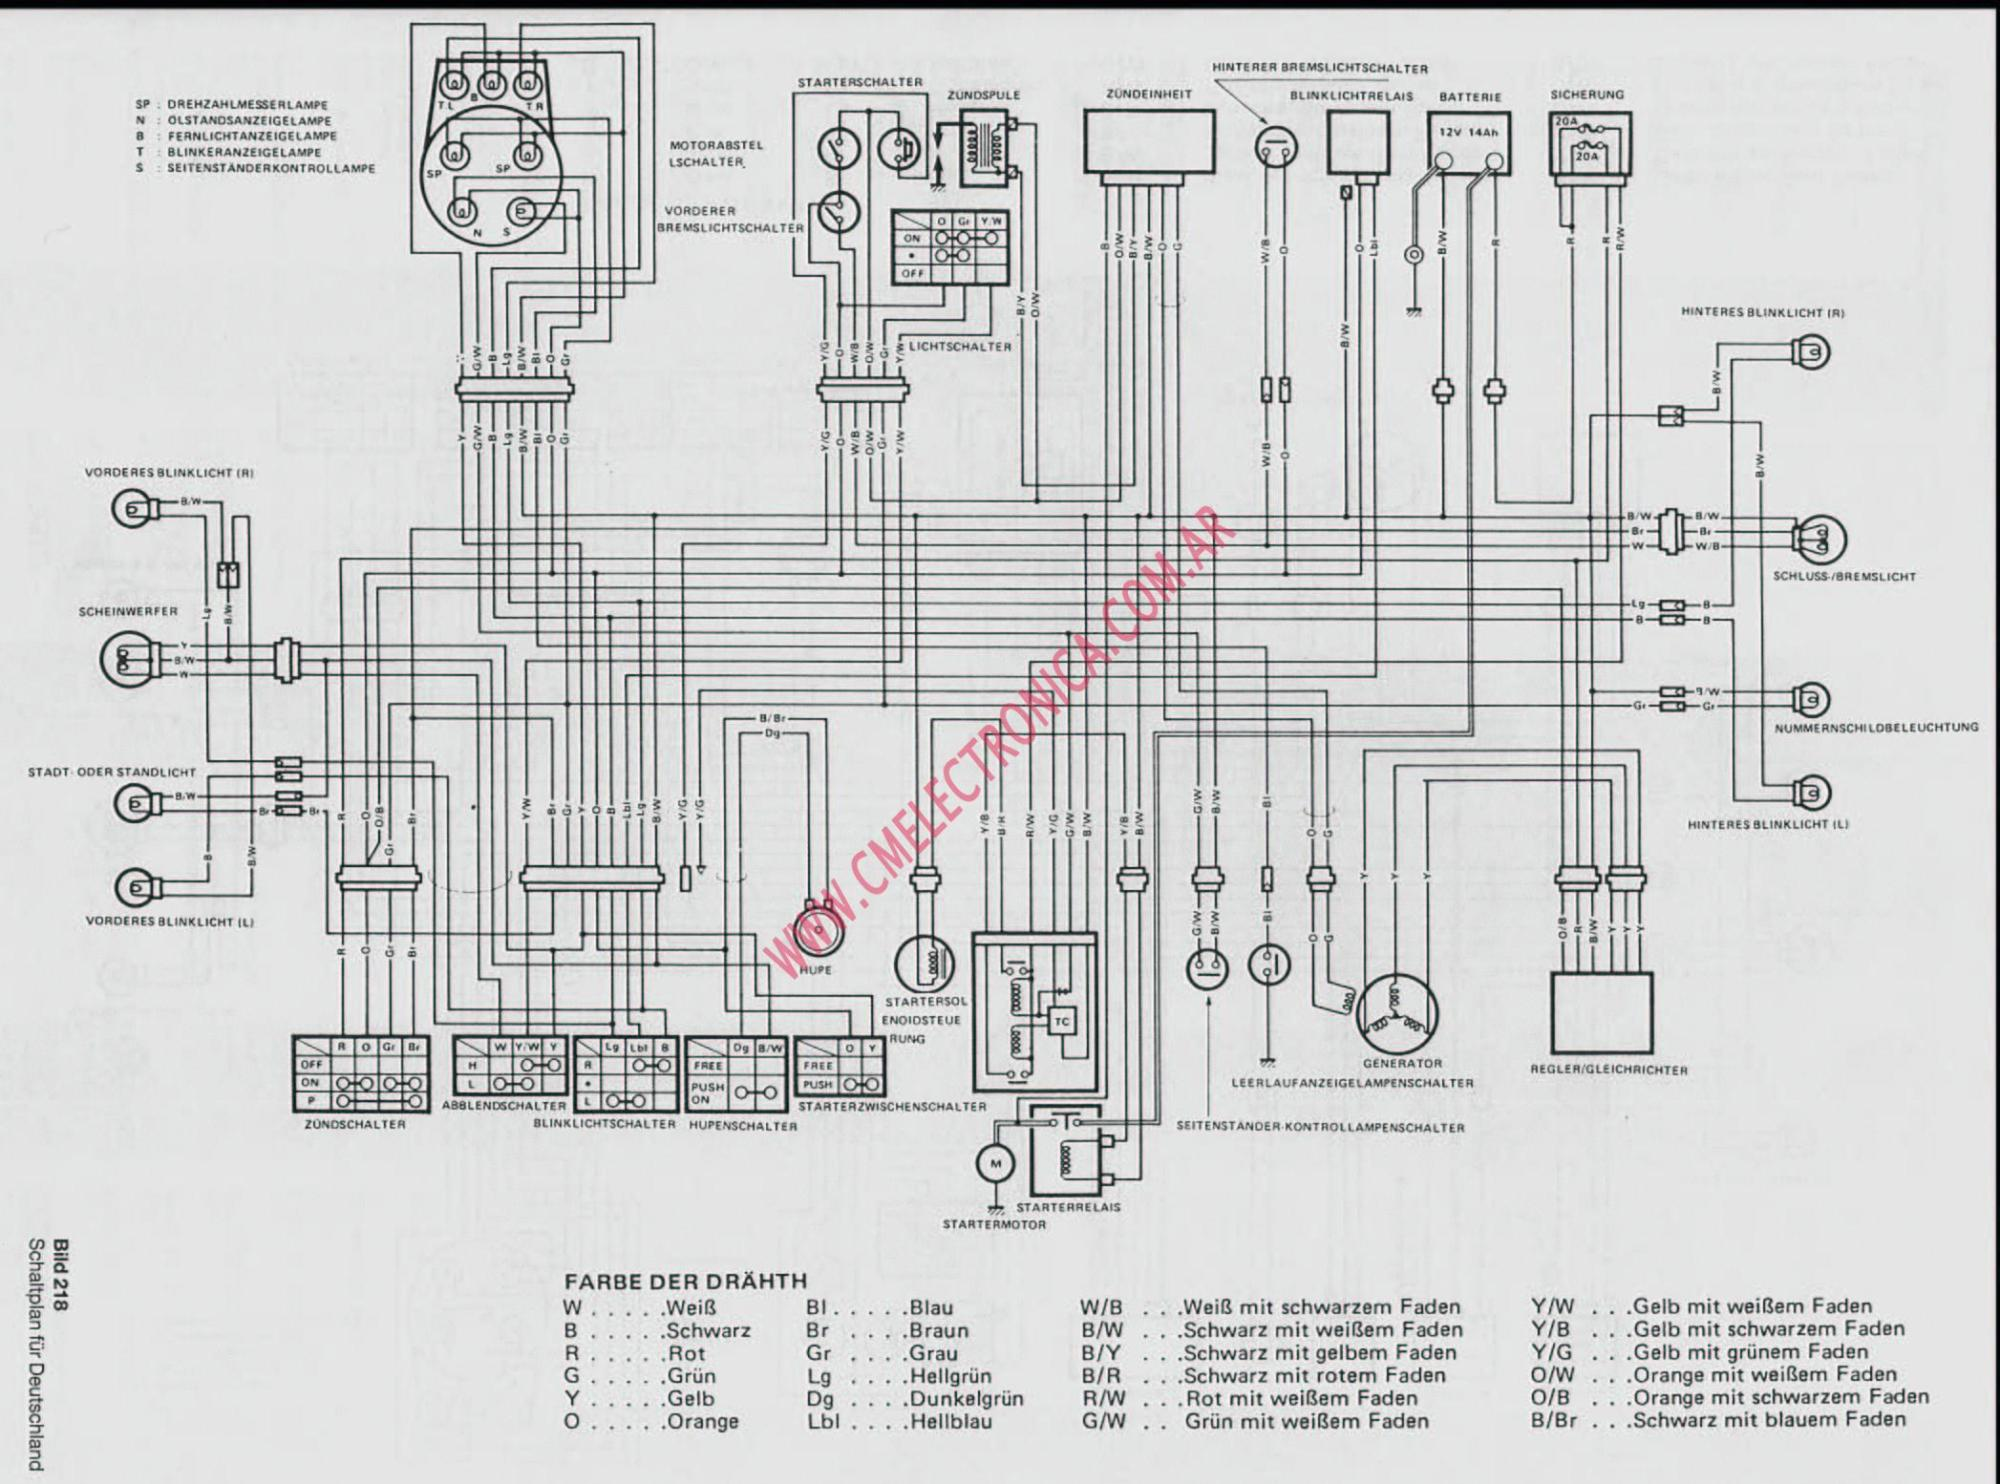 hight resolution of suzuki wiring diagram captain source of wiring diagram u2022suzuki gs 500 engine diagram get free